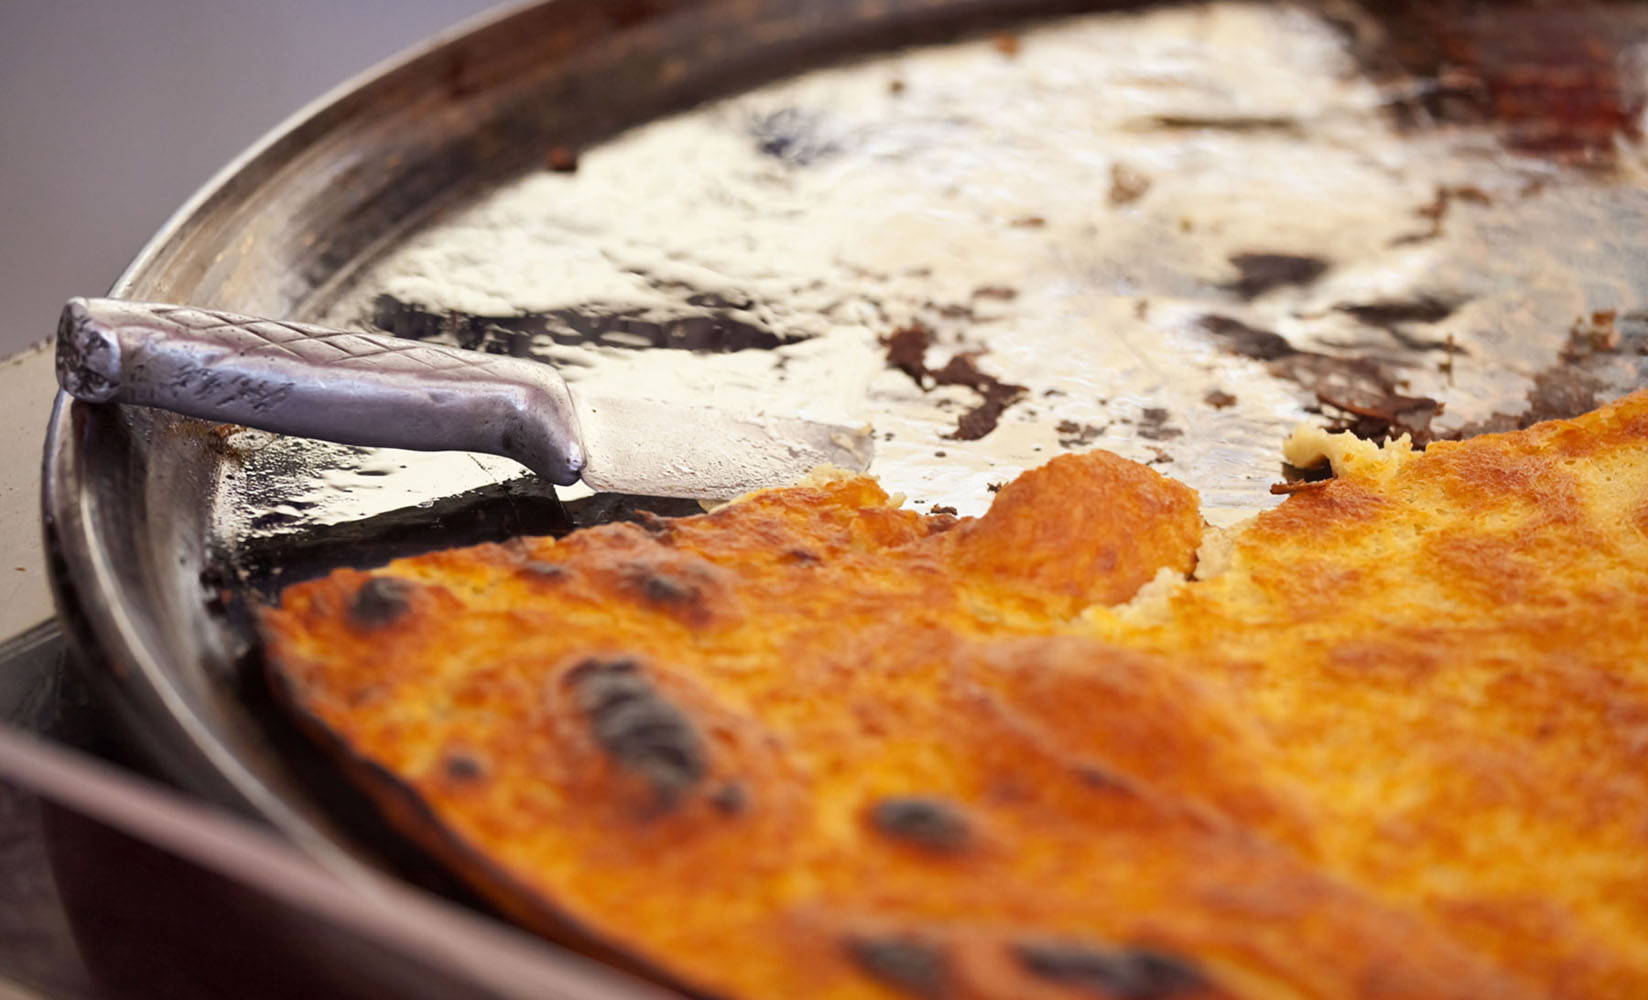 The French dish of Socca is a pancake made with chickpea flour.